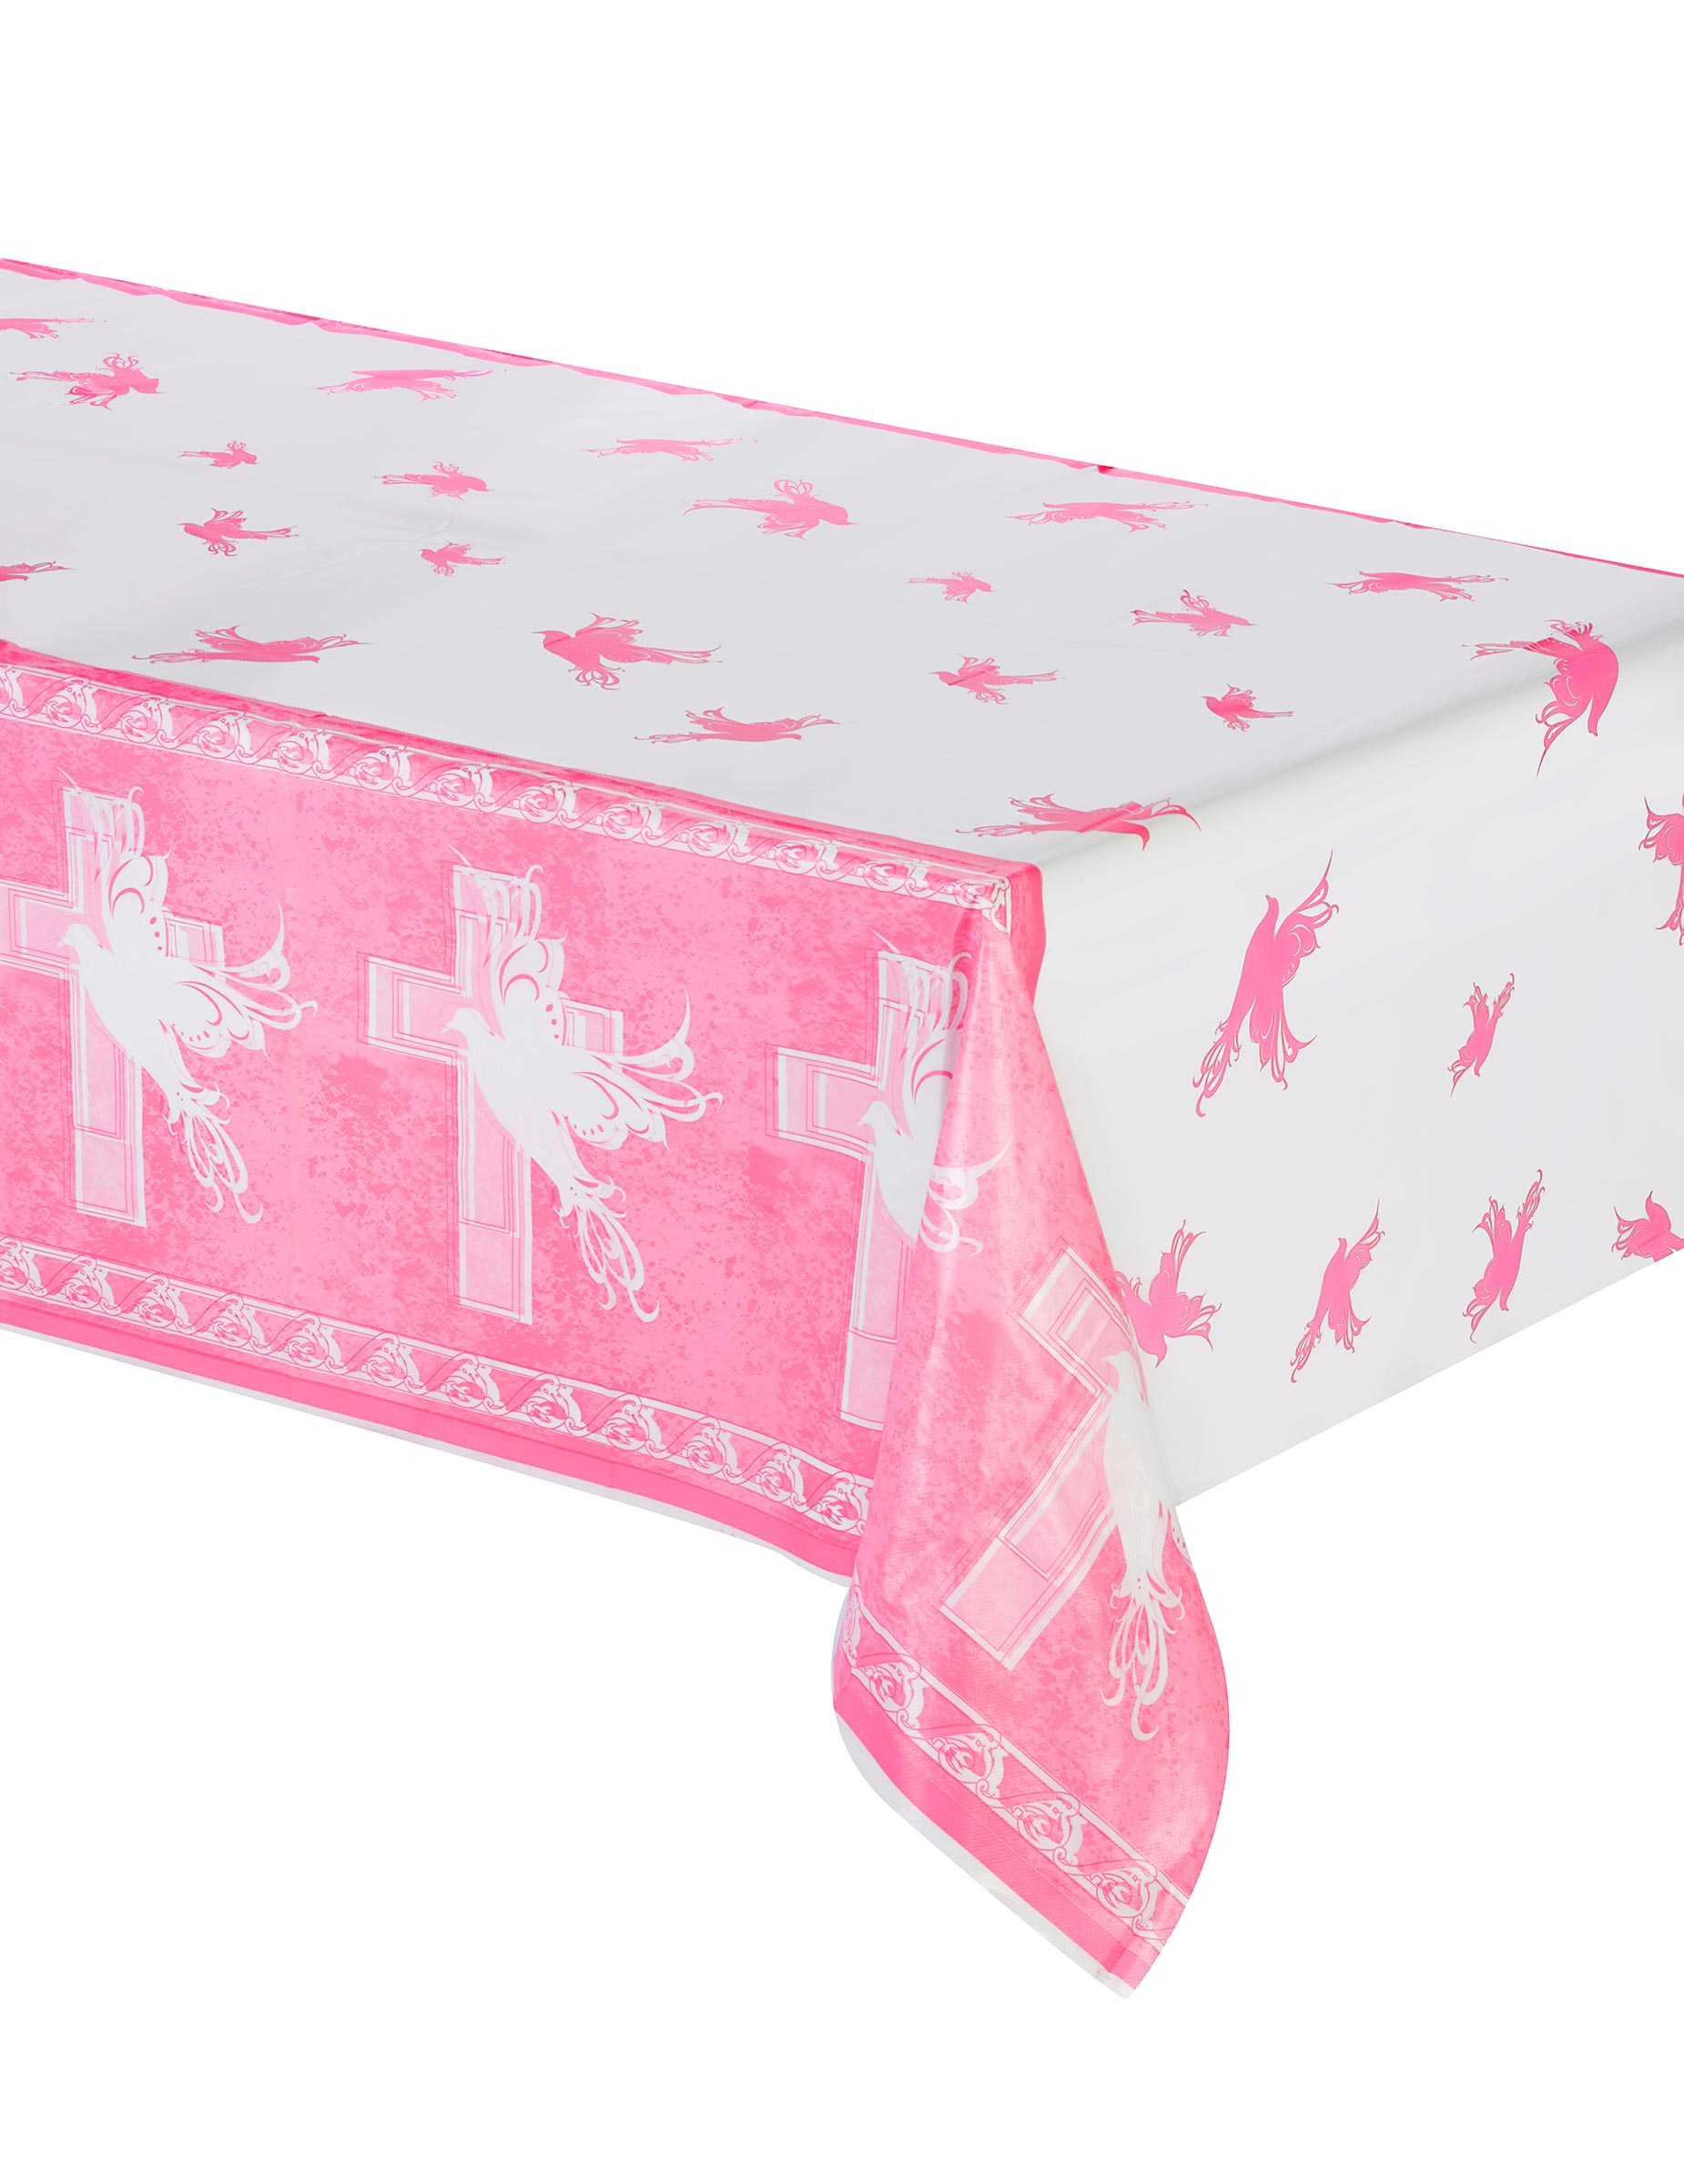 nappe plastique communion rose d coration anniversaire et f tes th me sur vegaoo party. Black Bedroom Furniture Sets. Home Design Ideas